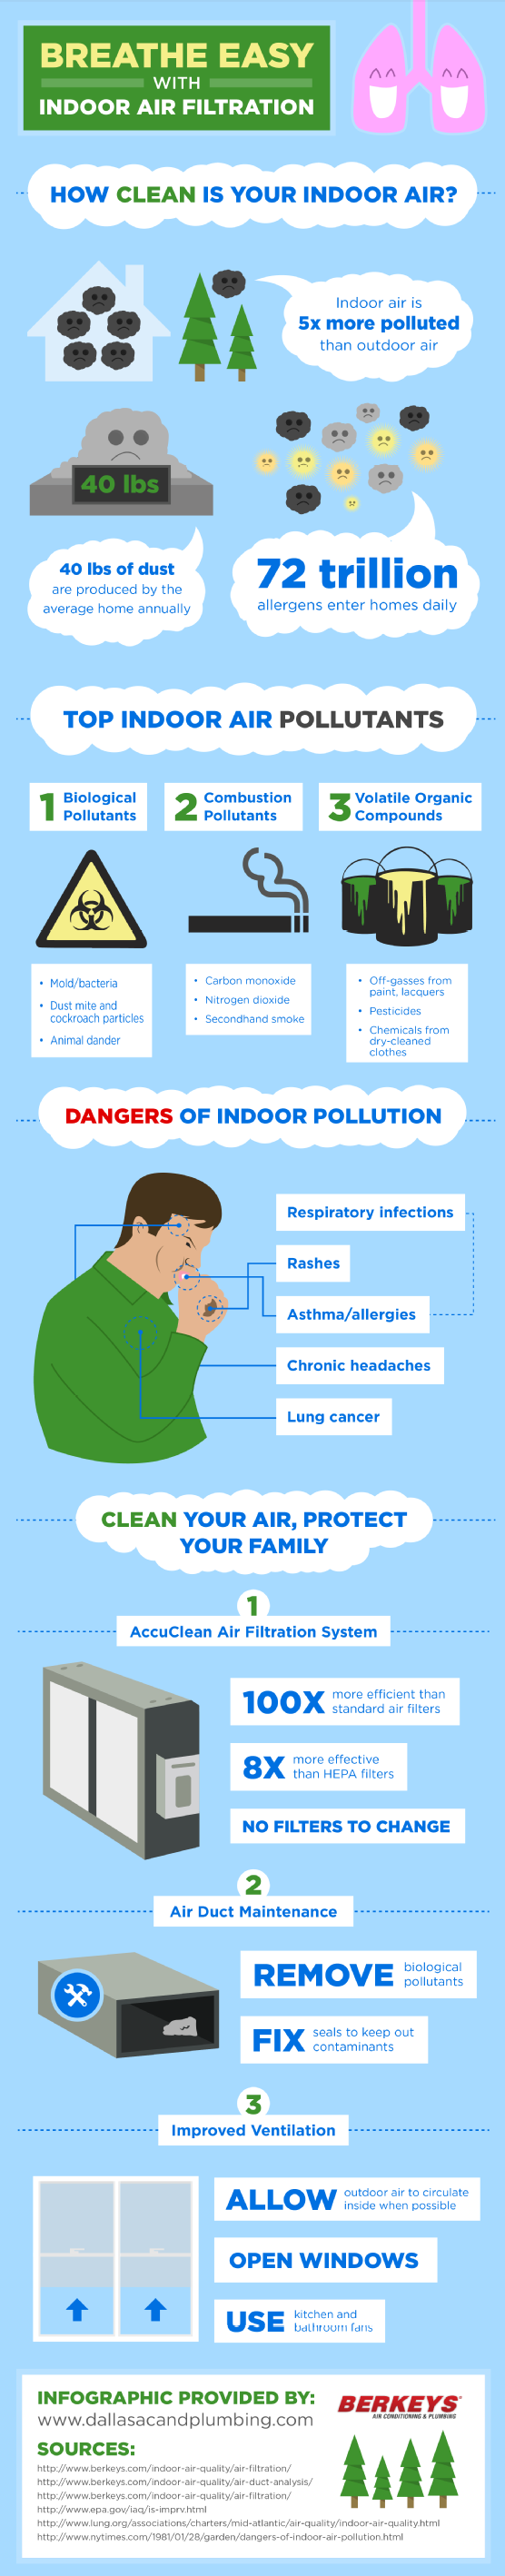 Indoor Air Pollution Infographic Hvac Boiler Heating And Air